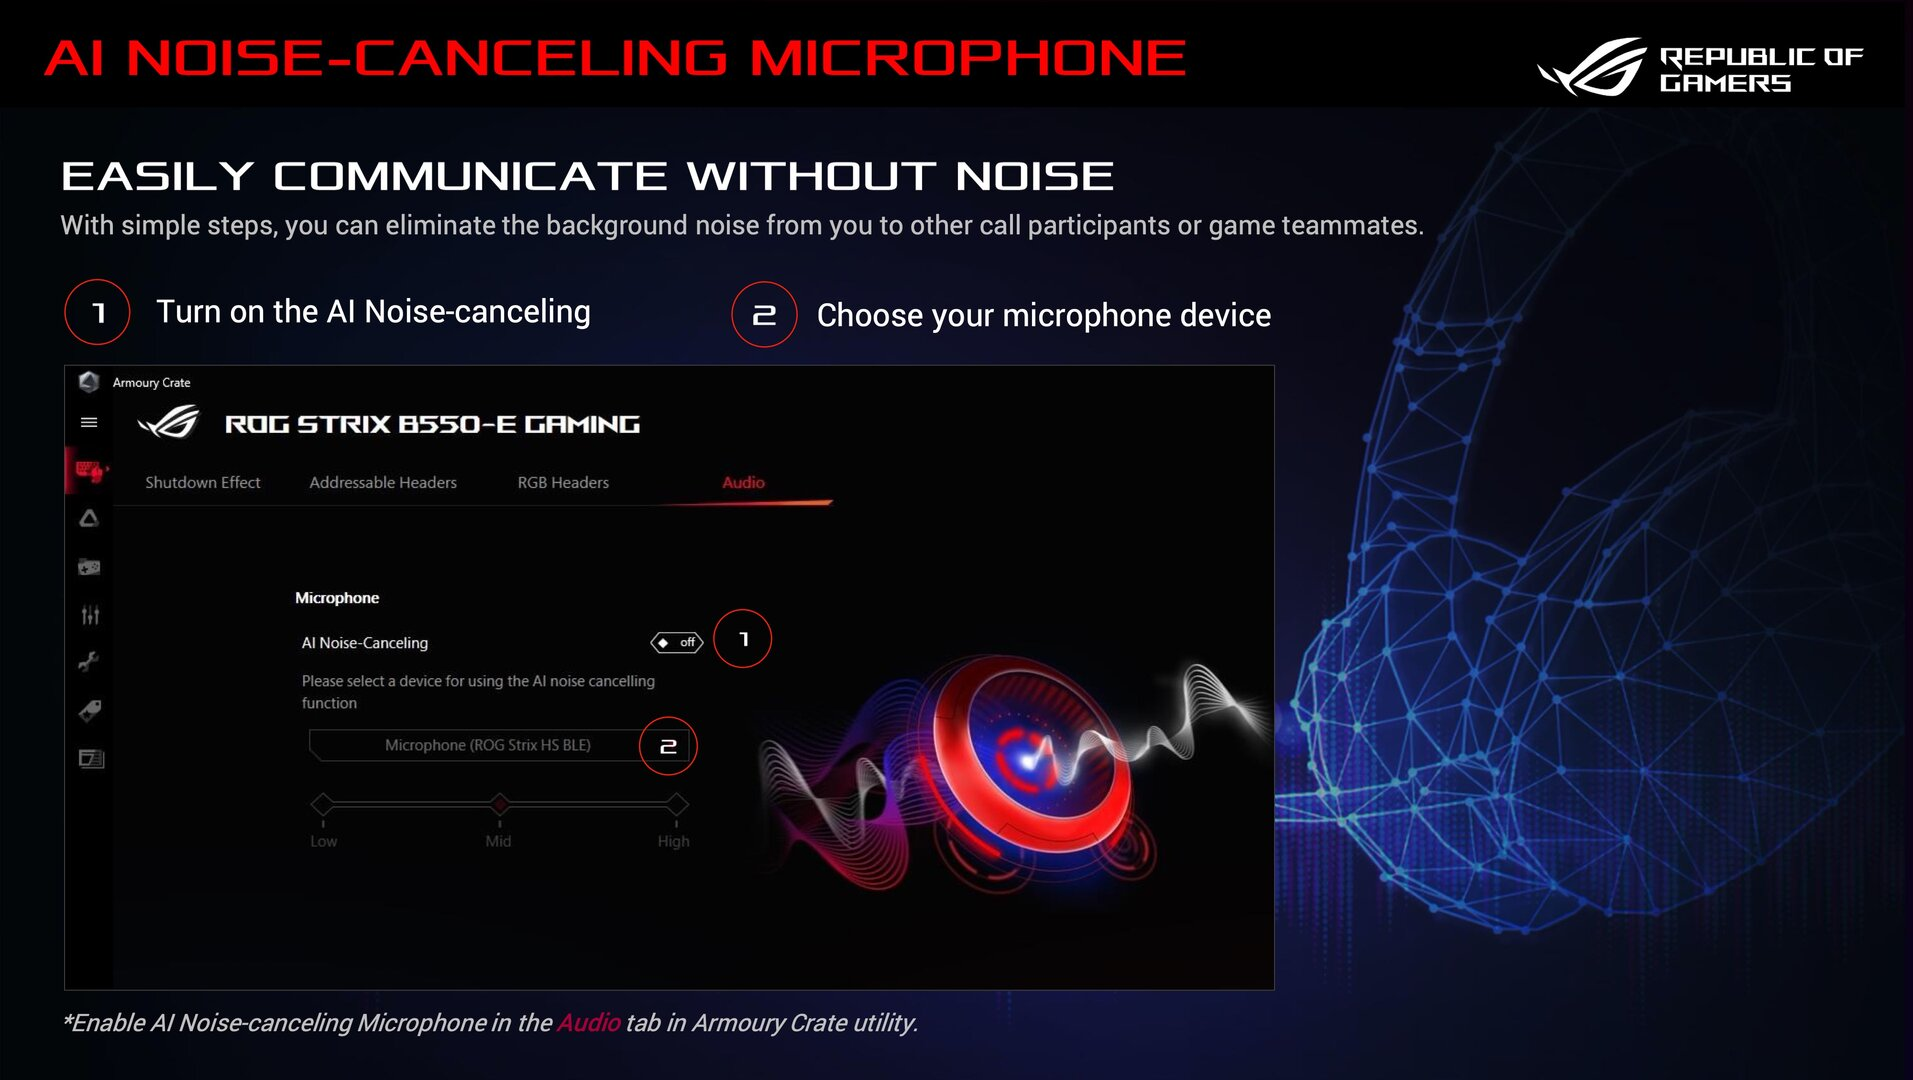 Asus AI Noise-Canceling Microphone